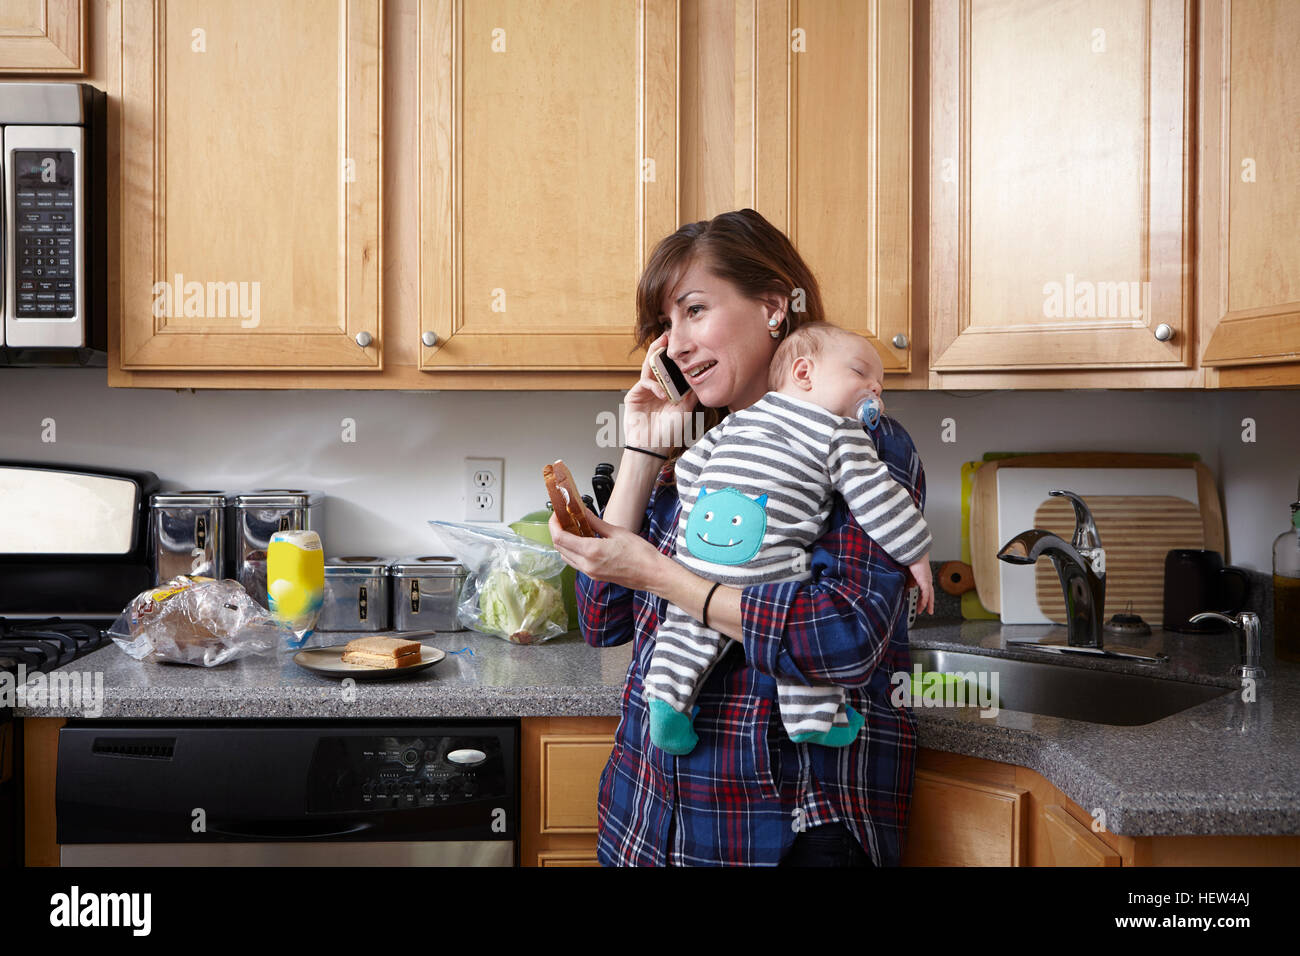 Mother holding sleeping baby boy and making telephone call - Stock Image